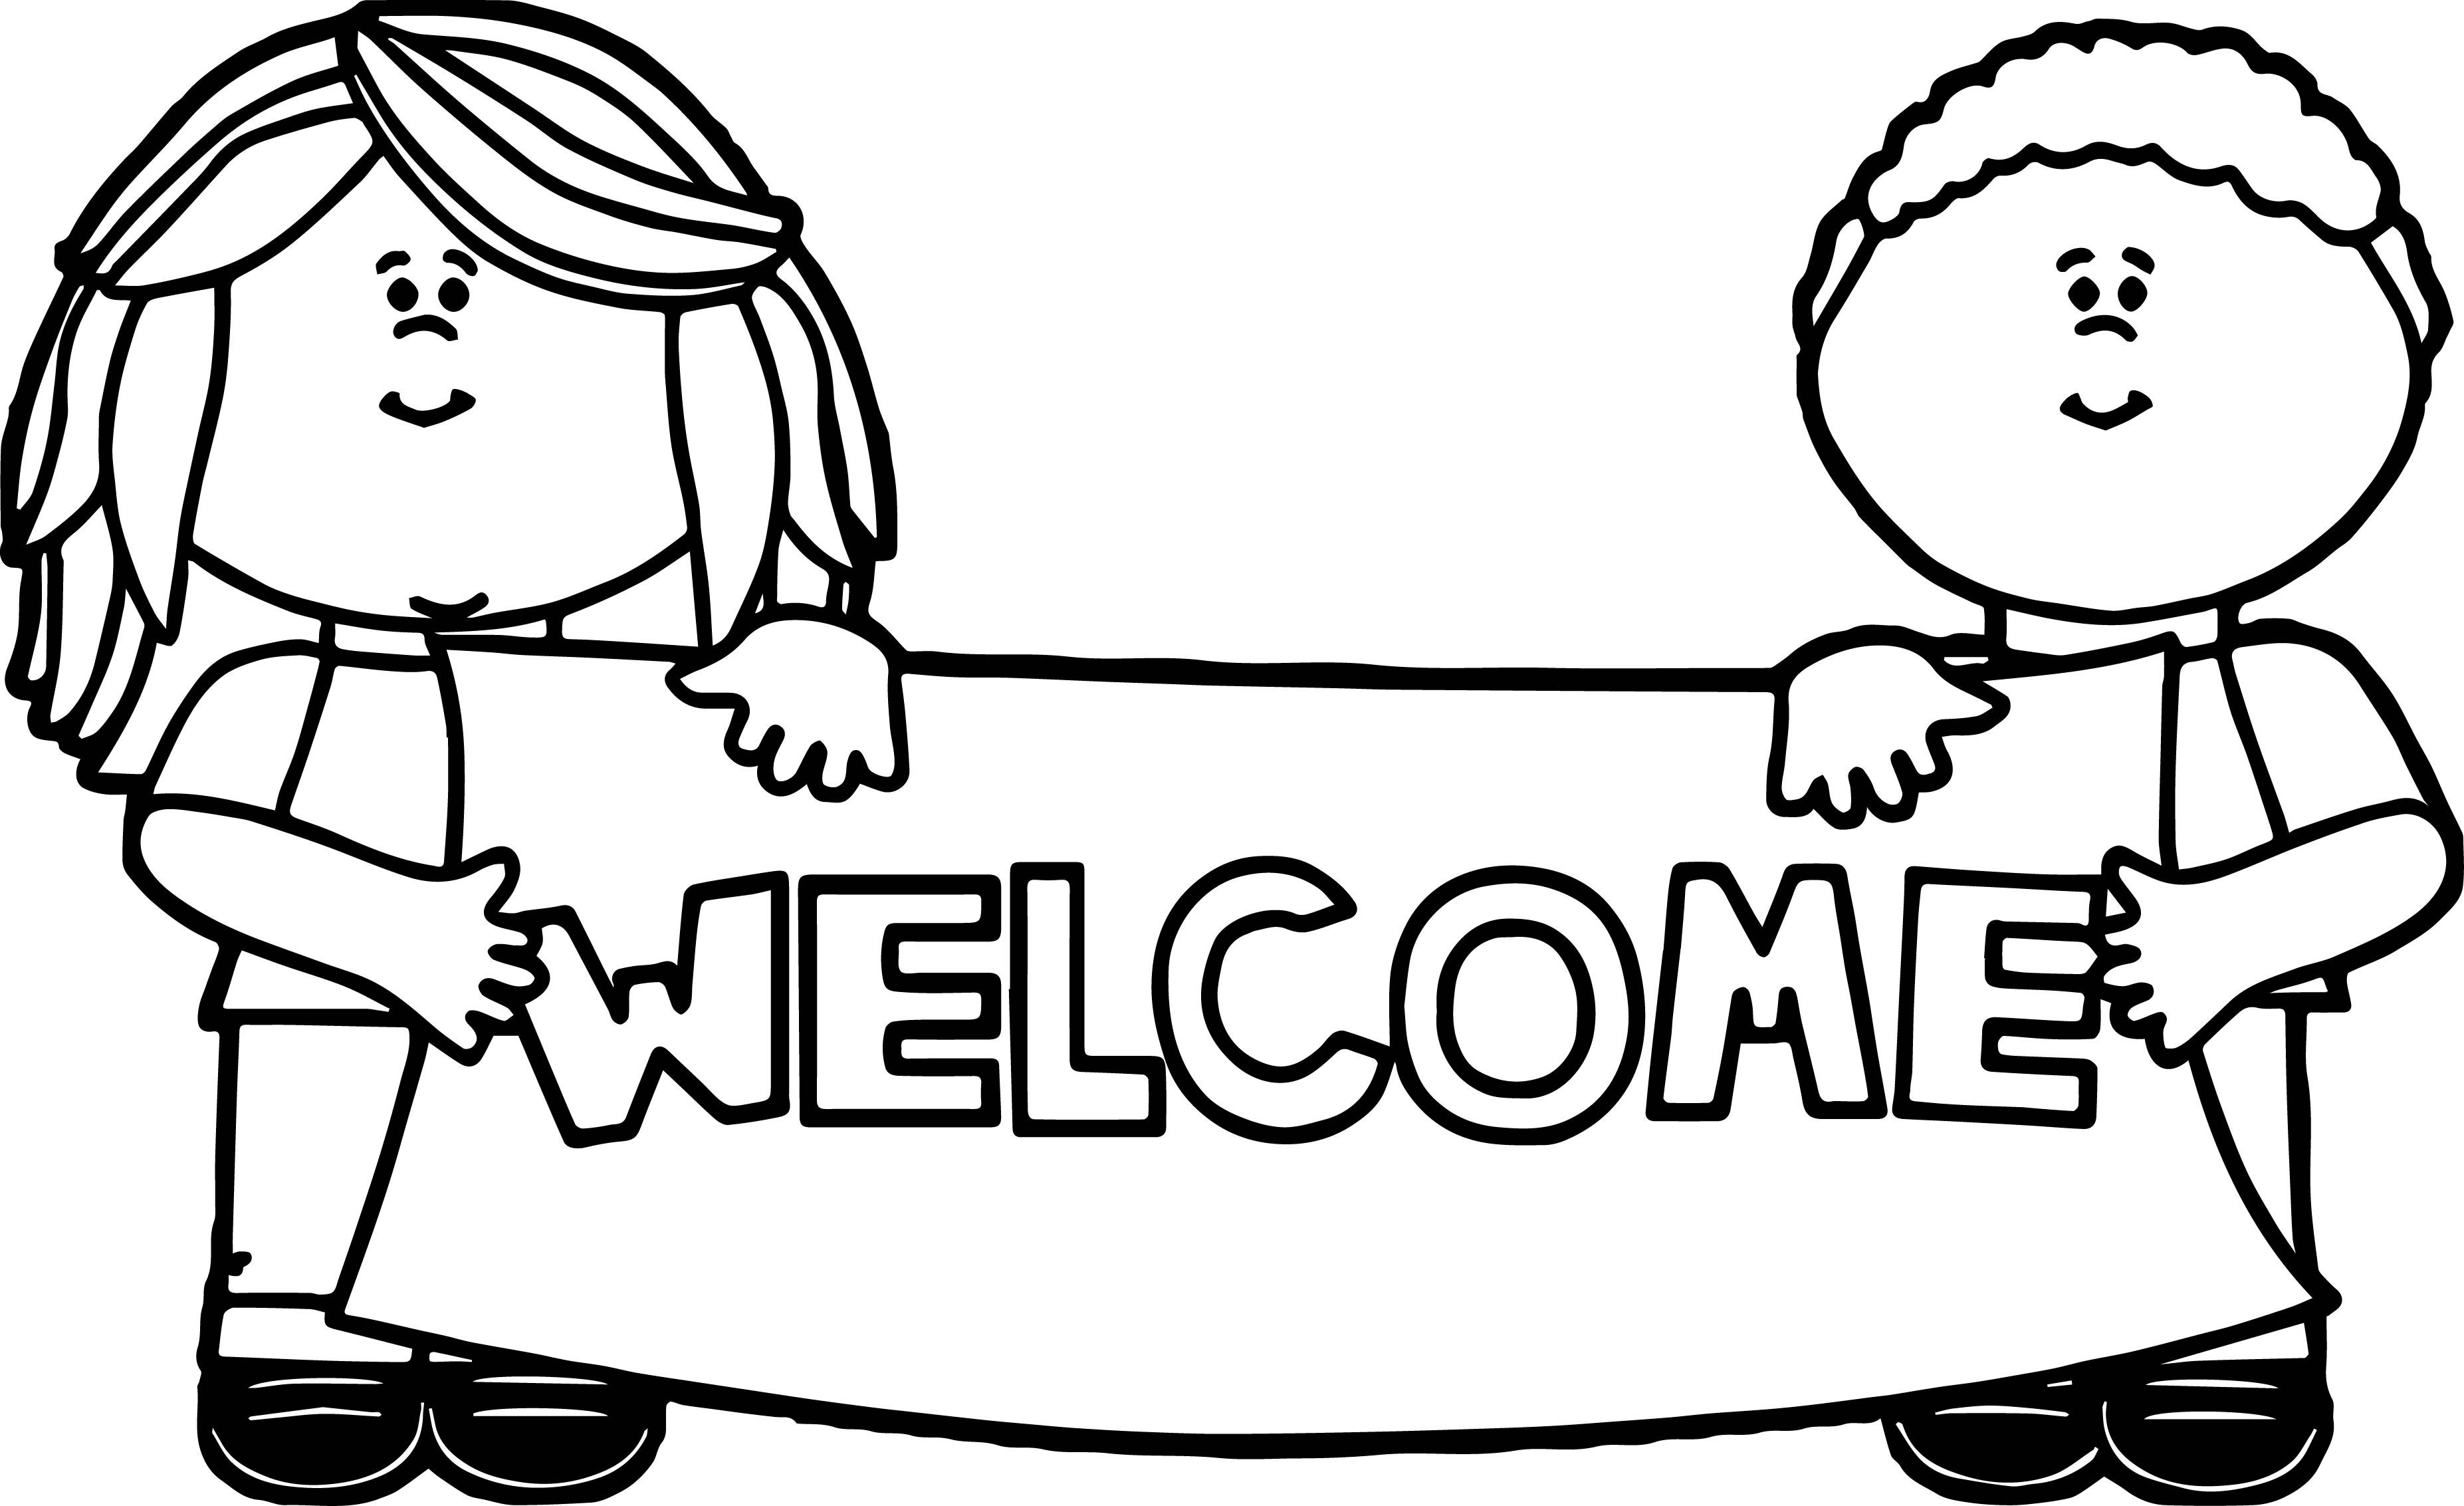 Awesome Kids Holding Welcome Sign Coloring Page School Coloring Pages Frog Coloring Pages Back To School Crafts